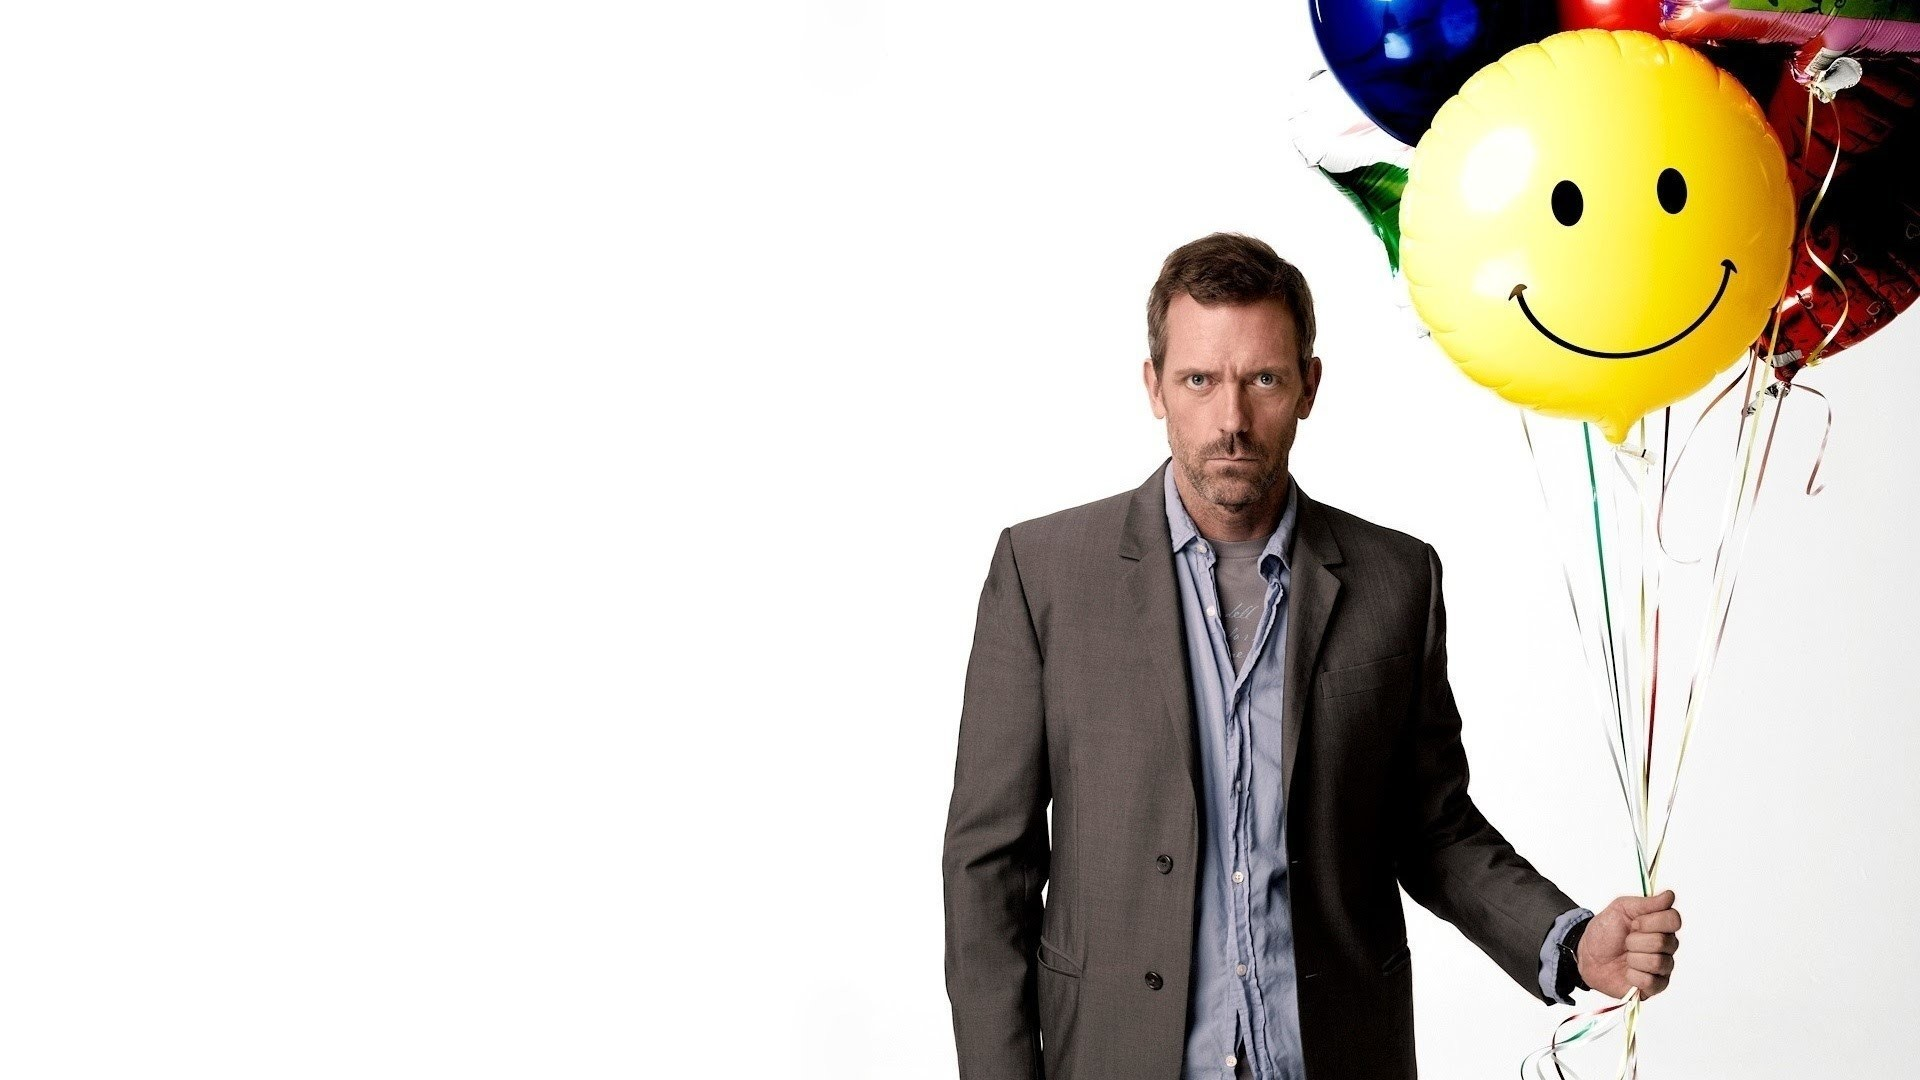 House Md Wallpaper HD 57 images 1920x1080